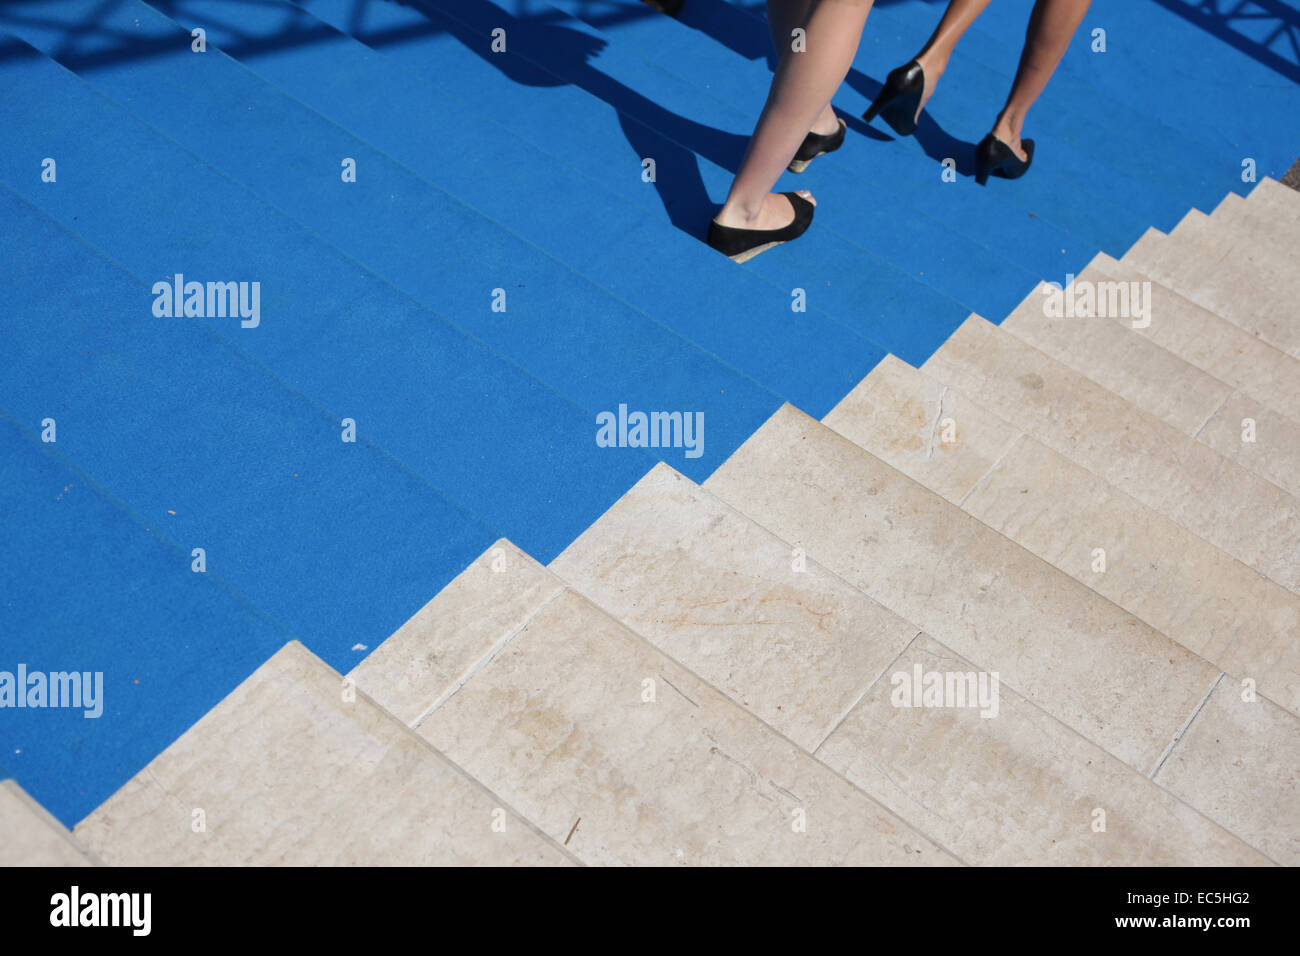 nice girls legs on stairs covered whith a blue carpet - Stock Image